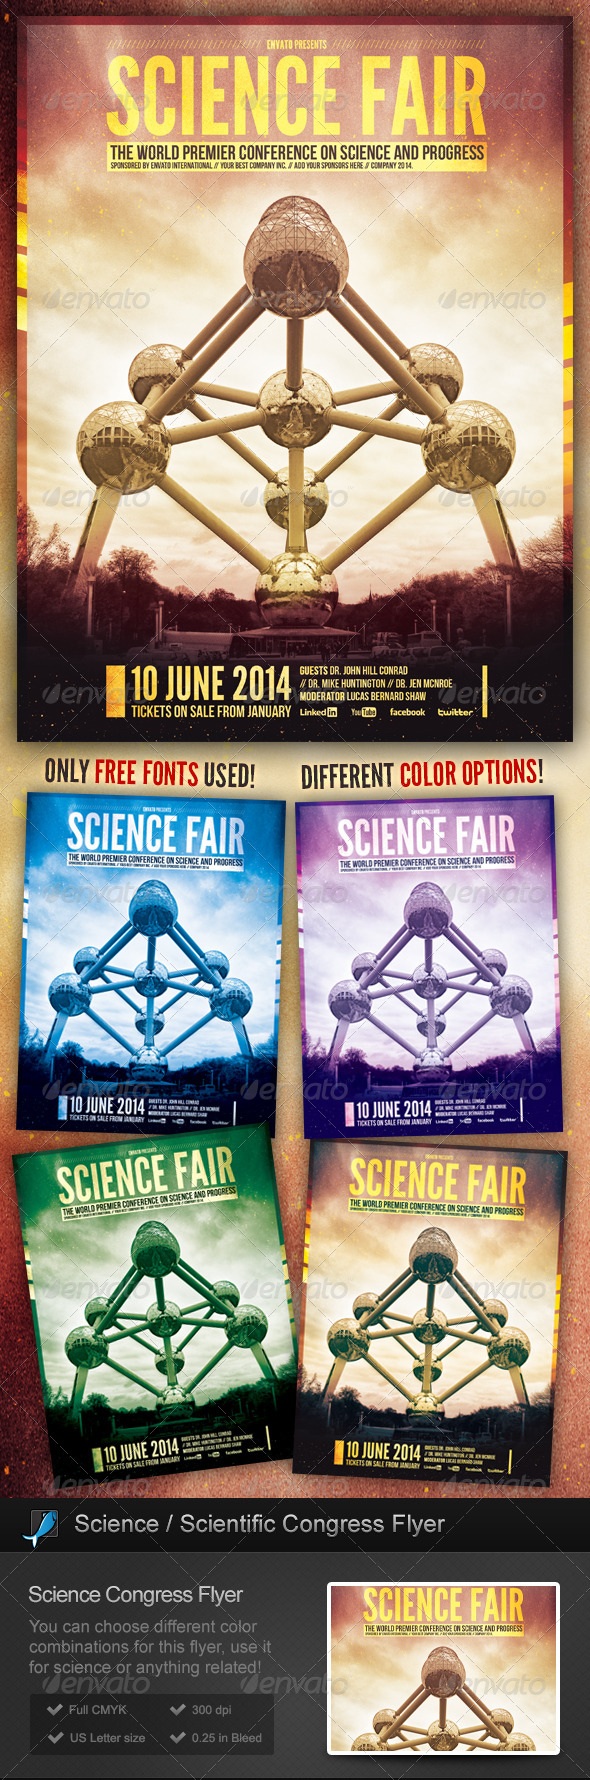 Science / Scientific Congress Flyer - Miscellaneous Events